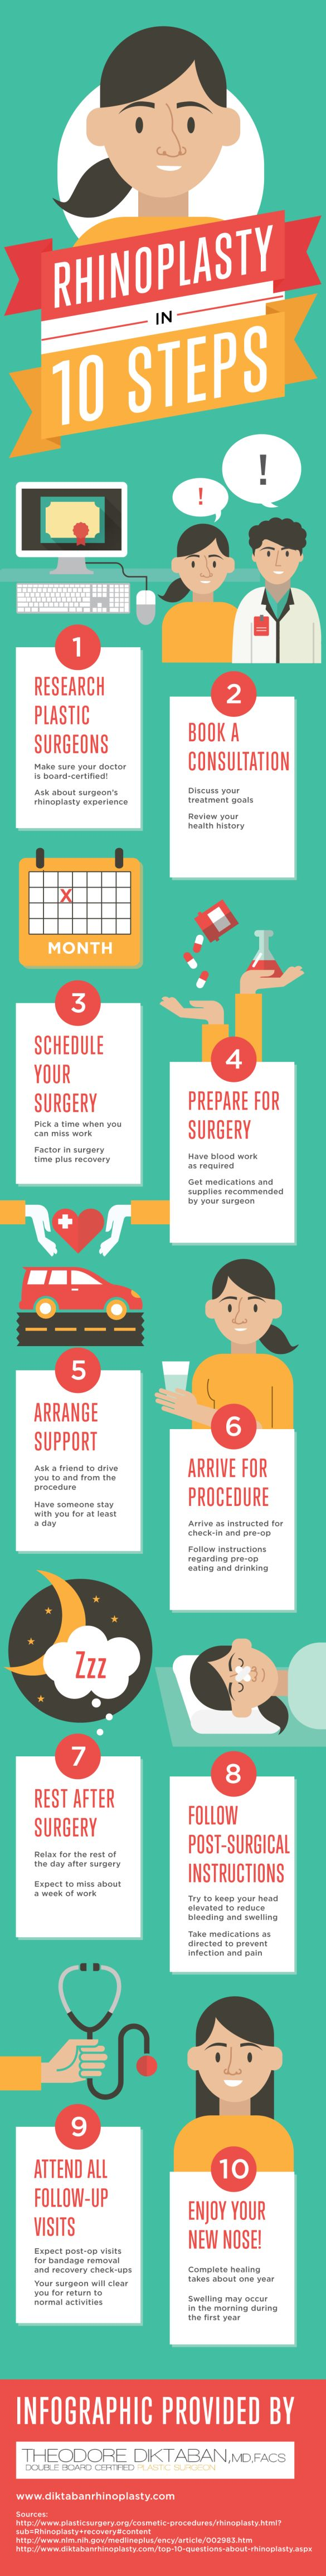 When scheduling your plastic surgery procedure, pick a time when you can miss work so you will have adequate time to recover. Take a look at this best nose job in Manhattan infographic for more advice that can help you plan the process.